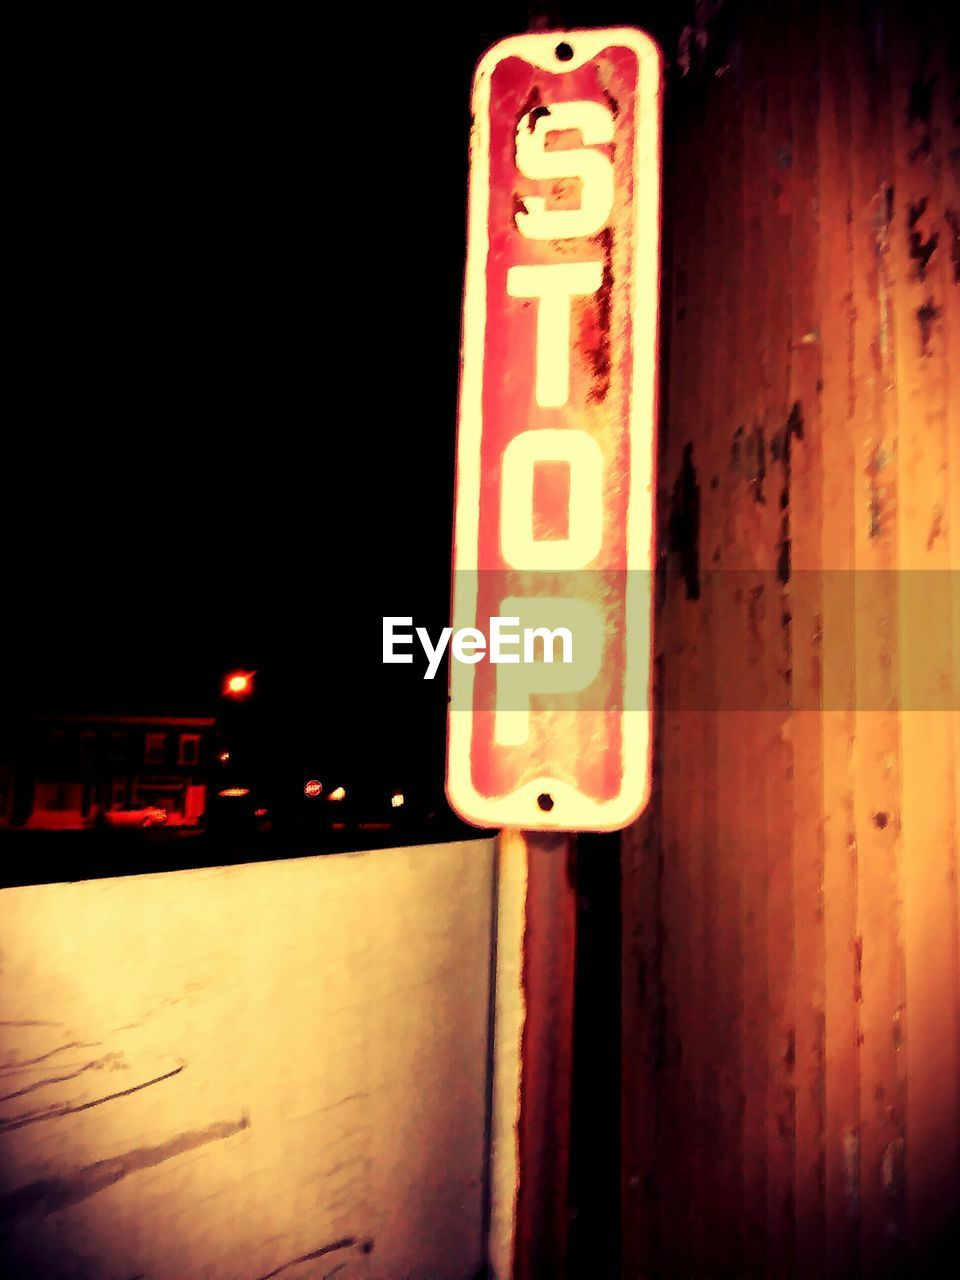 night, illuminated, text, communication, no people, neon, transportation, red, outdoors, close-up